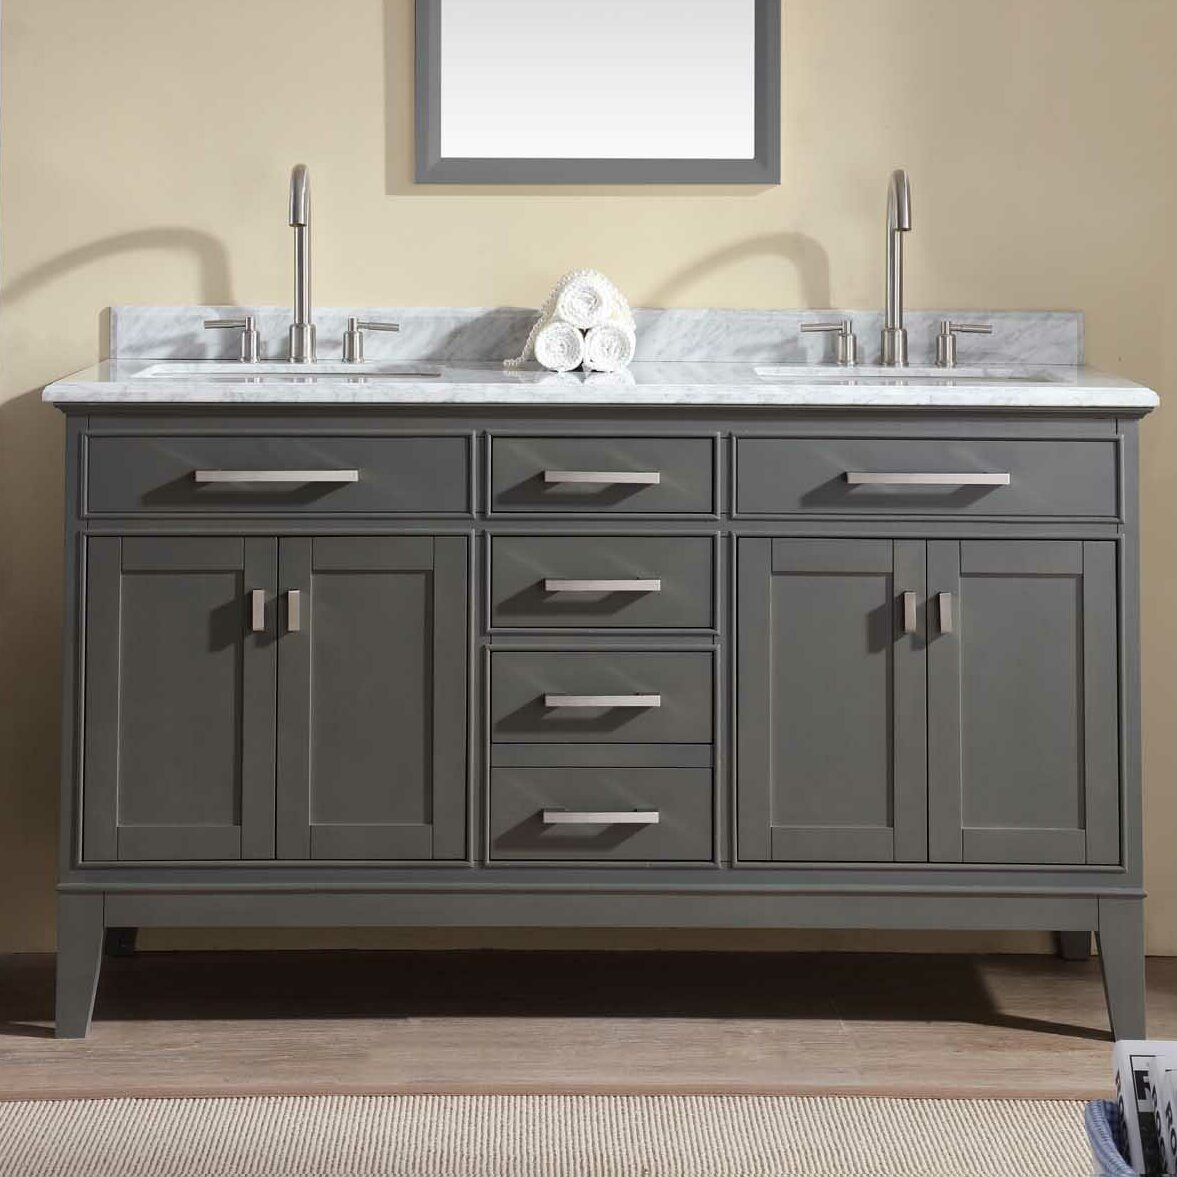 Ari kitchen bath danny 60 double bathroom vanity set reviews wayfair for Pictures of bathrooms with double sinks